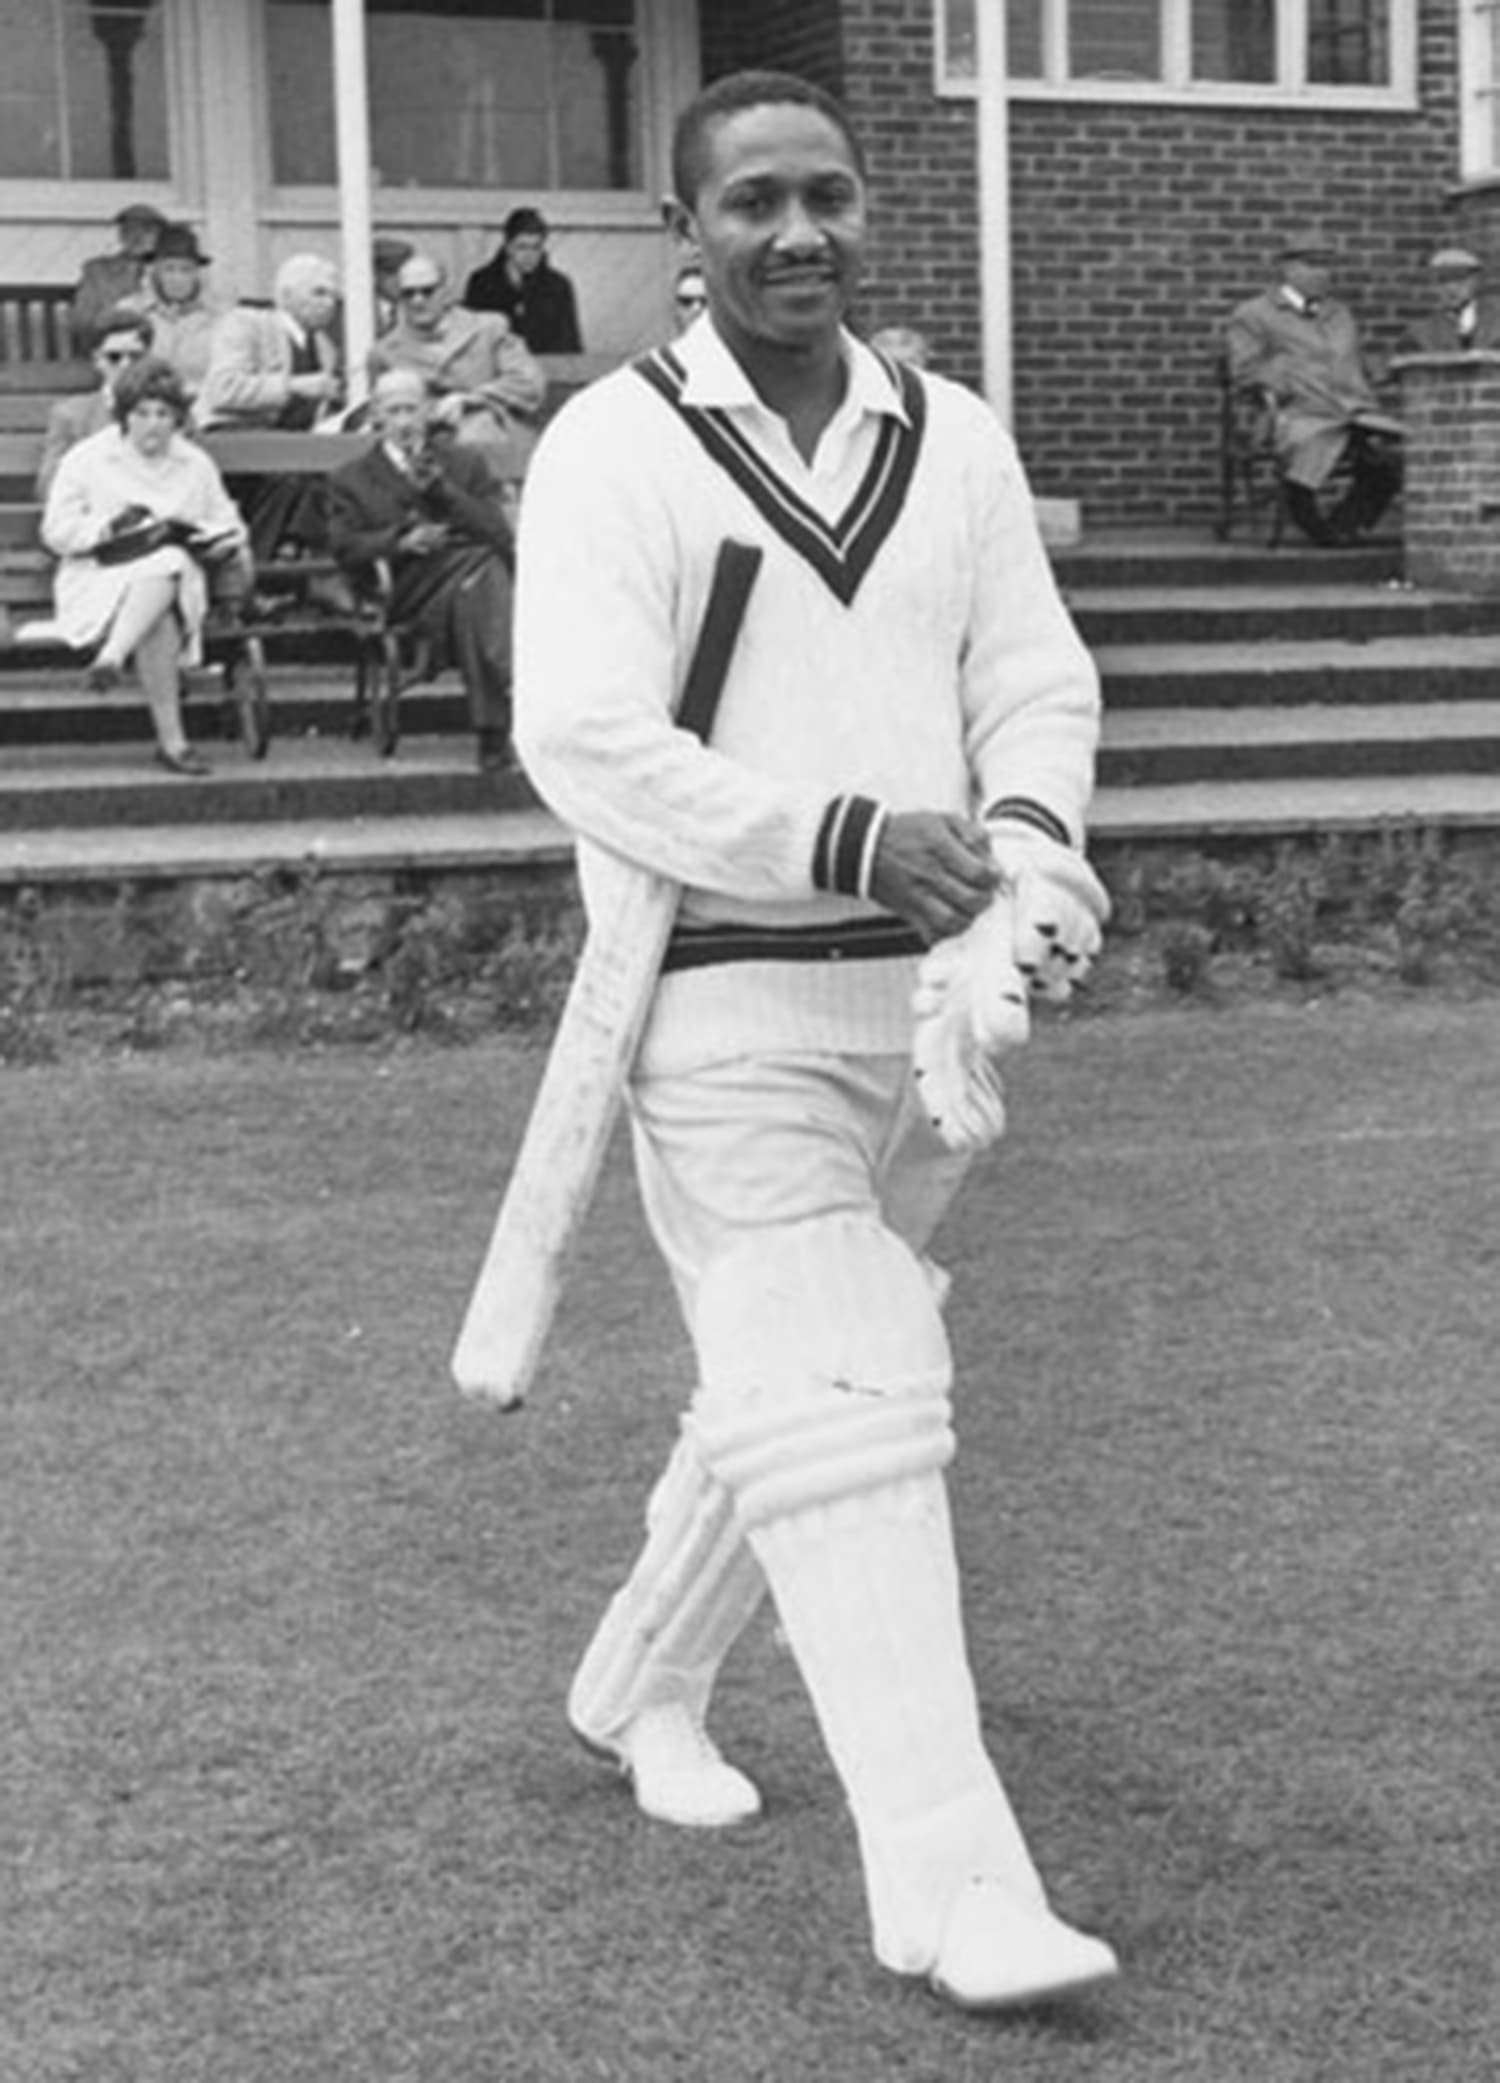 Frank Worrell, WI's first black captain. He was made captain in 1960, almost 40 years after WI gained international cricket status. Till then all WI captains were white. -- Photo: St. Lucia News